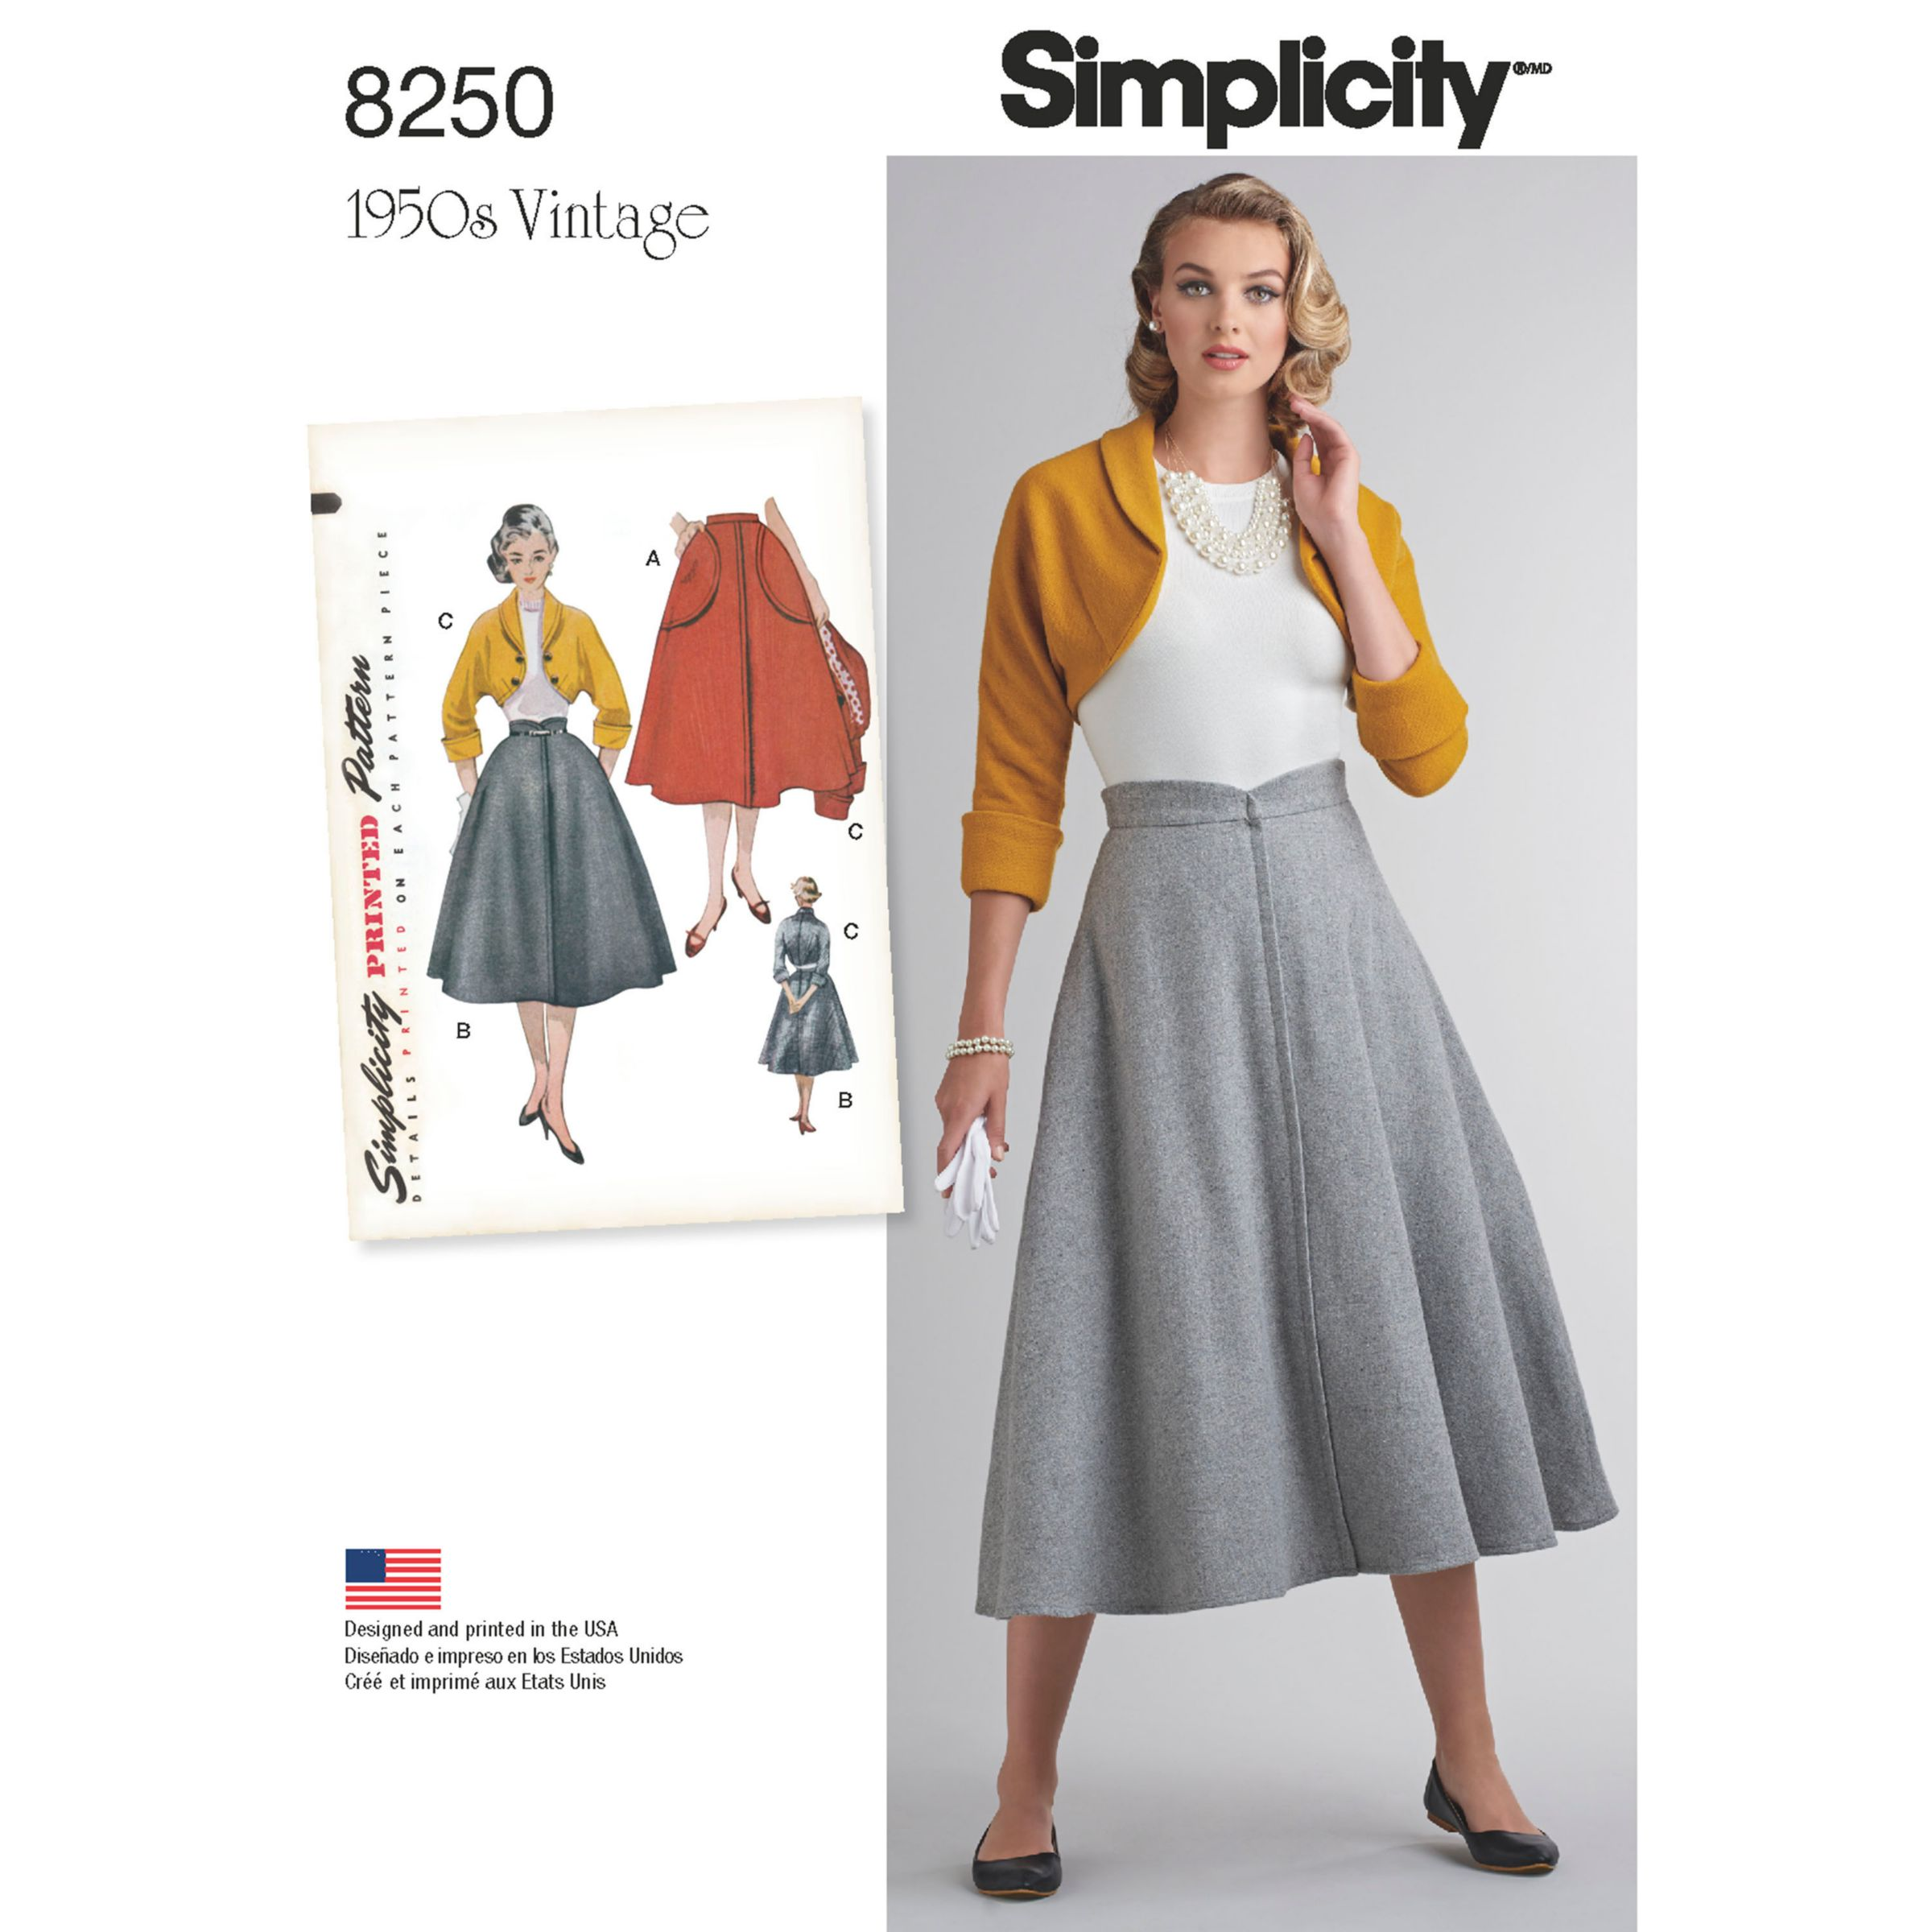 Simplicity Simplicity Misses' Women's Vintage 1950's Skirt and Bolero Sewing Pattern, 8250